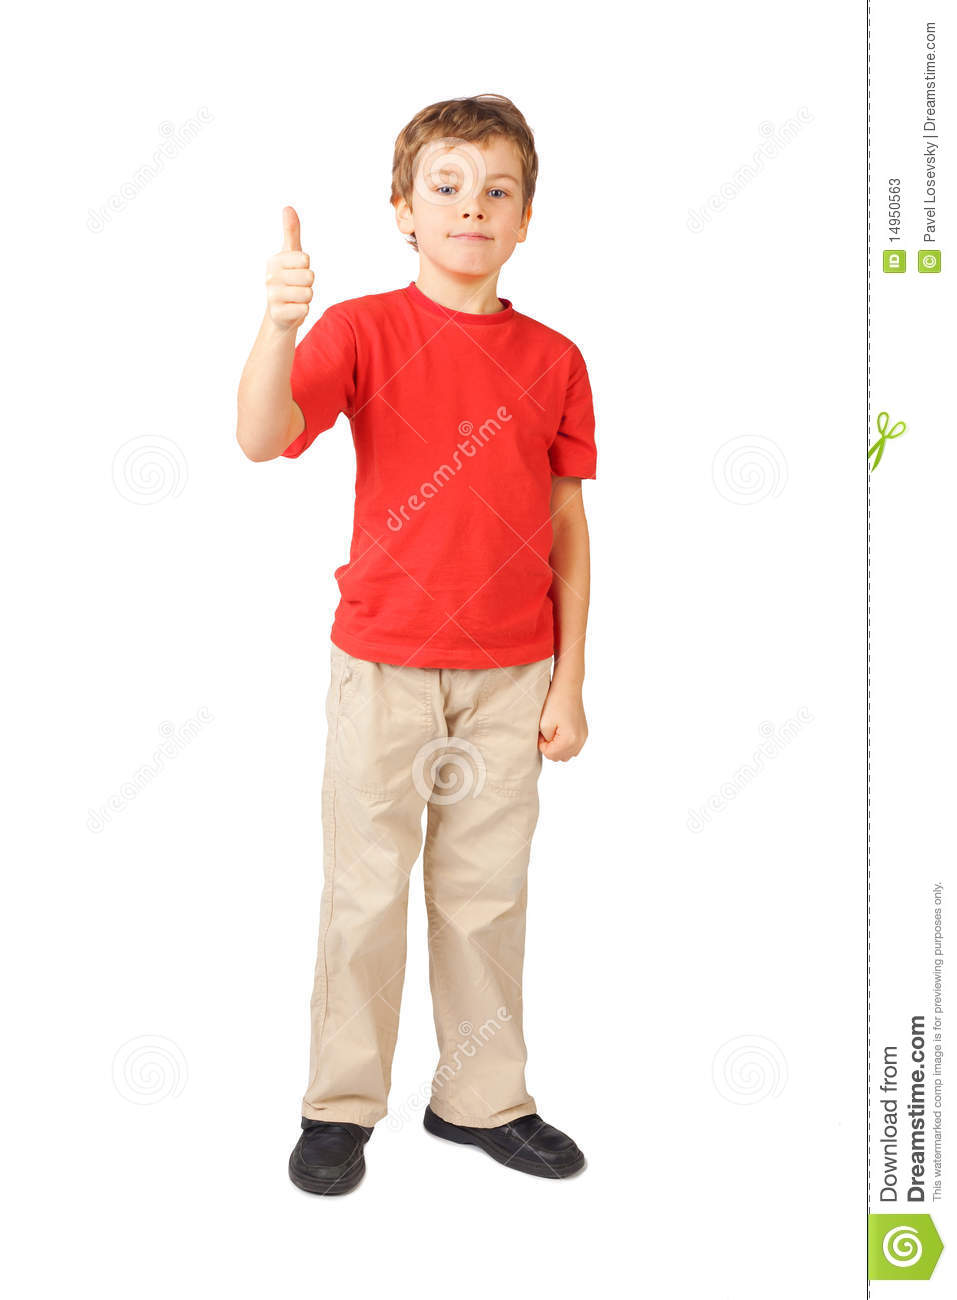 boy standing on white thumbsup gesture stock image image